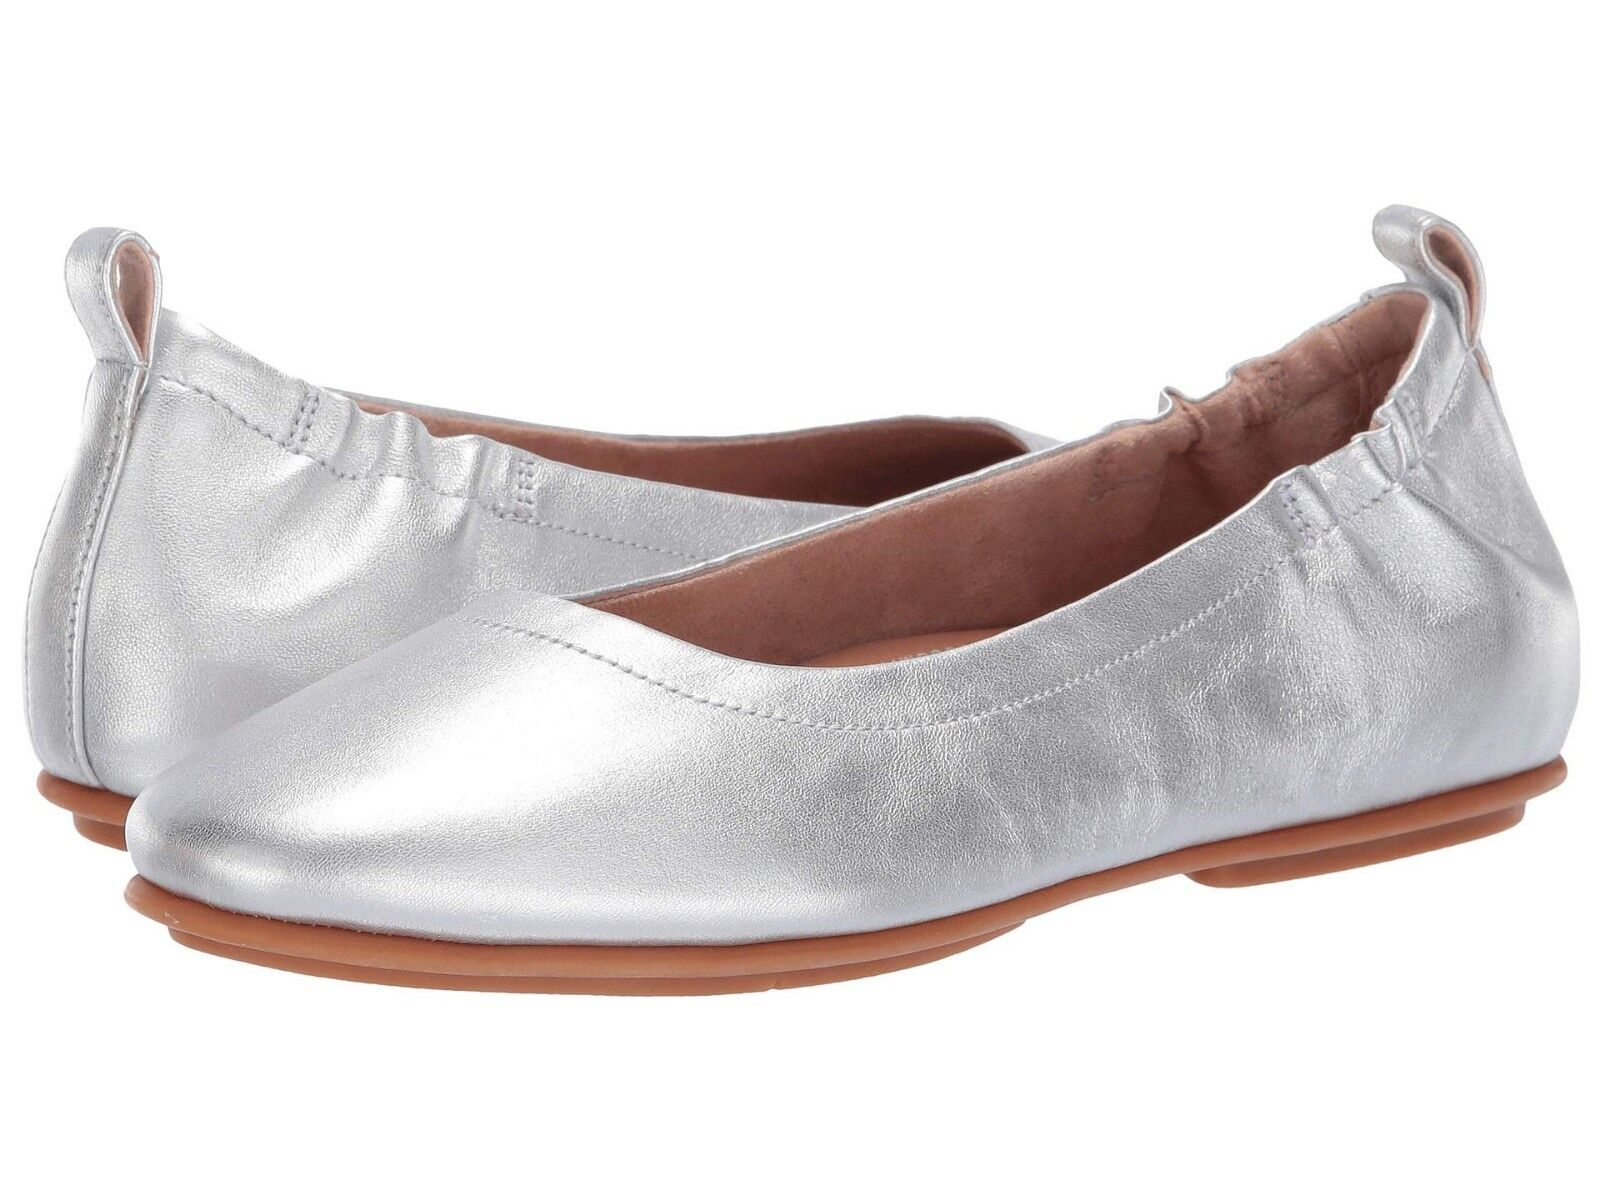 Women's Shoes Fitflop ALLEGRO Closed Toe Leather Ballet Flats Q74-011 SILVER